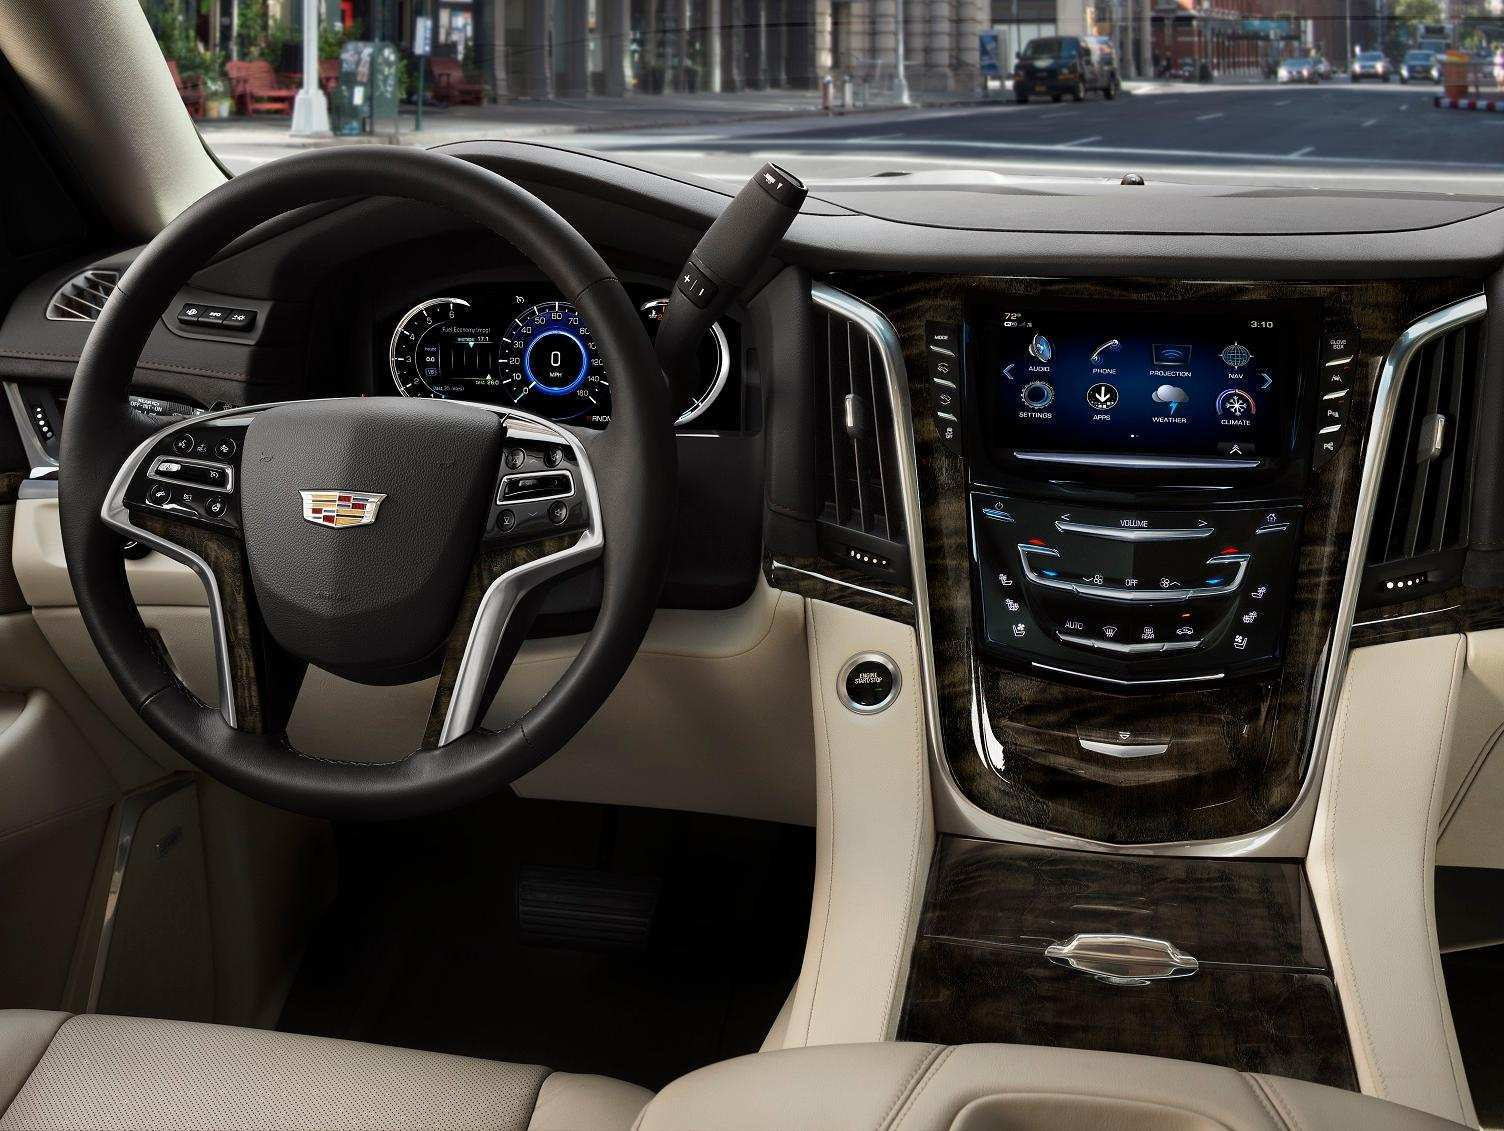 59 All New 2019 Cadillac Escalade Interior Concept